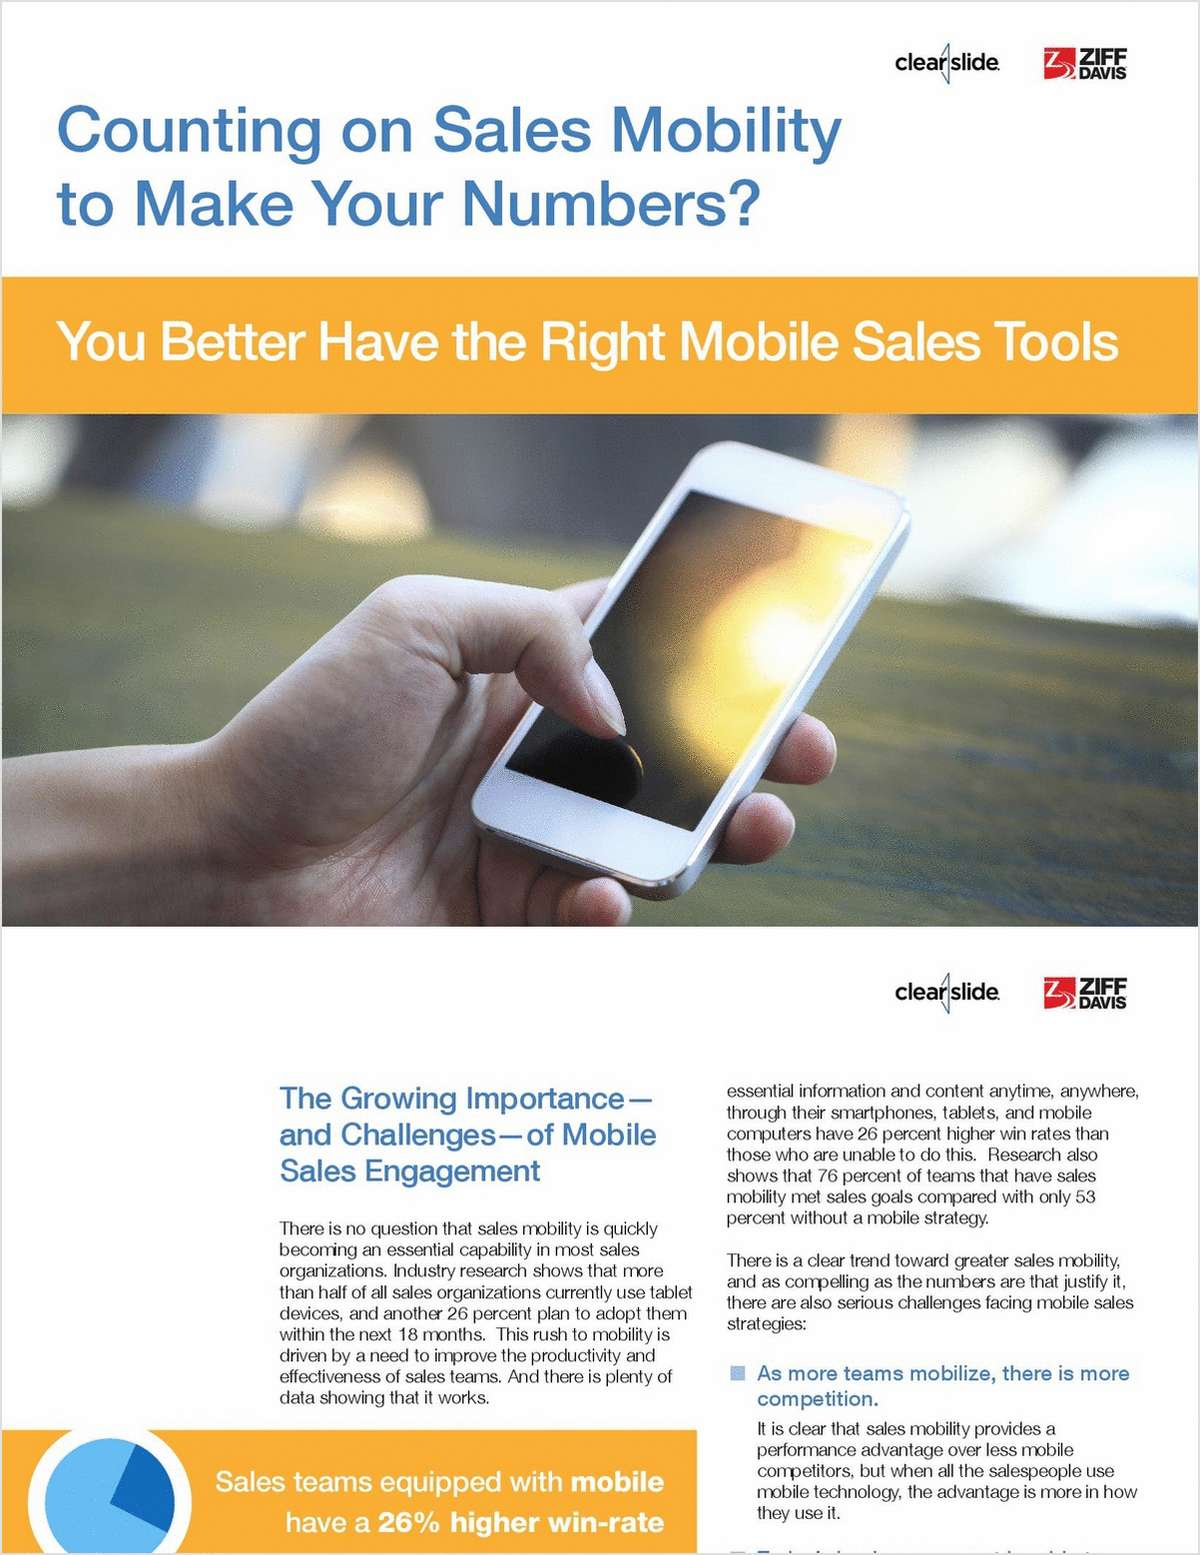 How The Right Mobile Sales Tool Can Help You Make Your Numbers